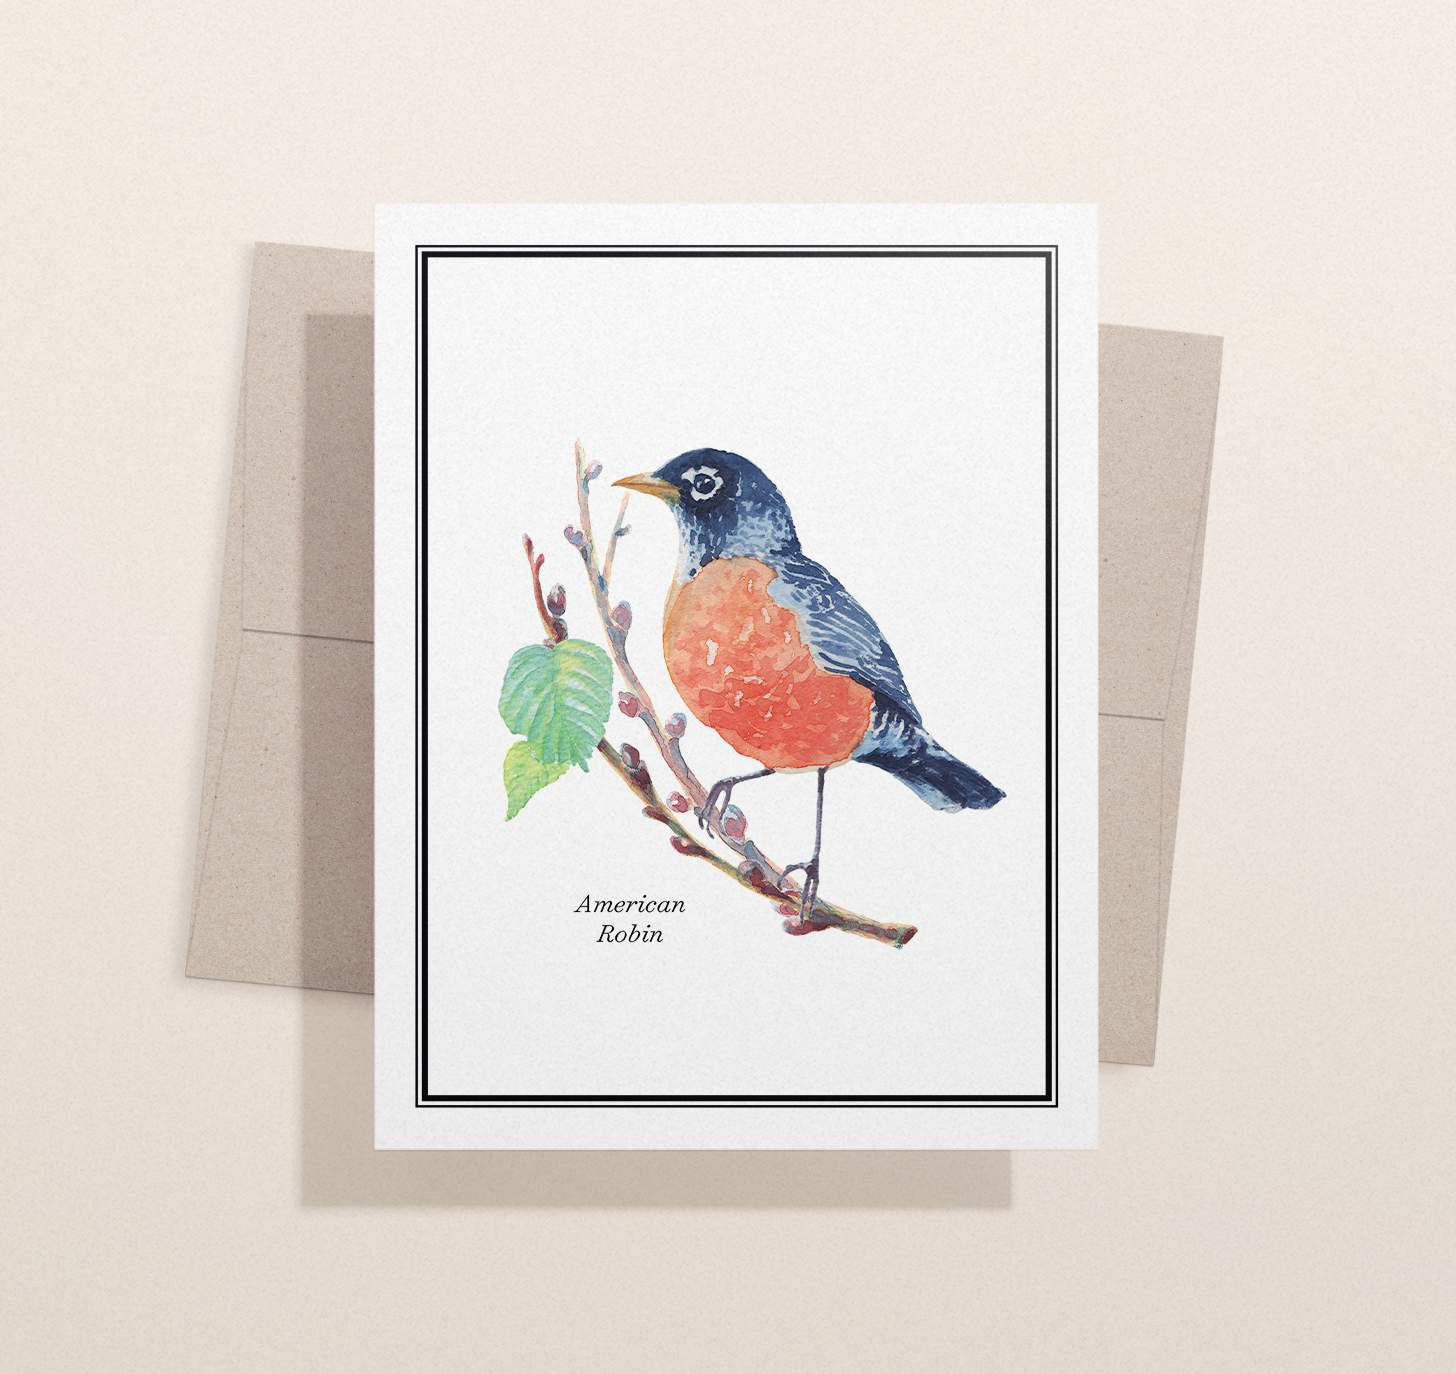 Red and black bird sitting on brown branch design with envelope and light brown background